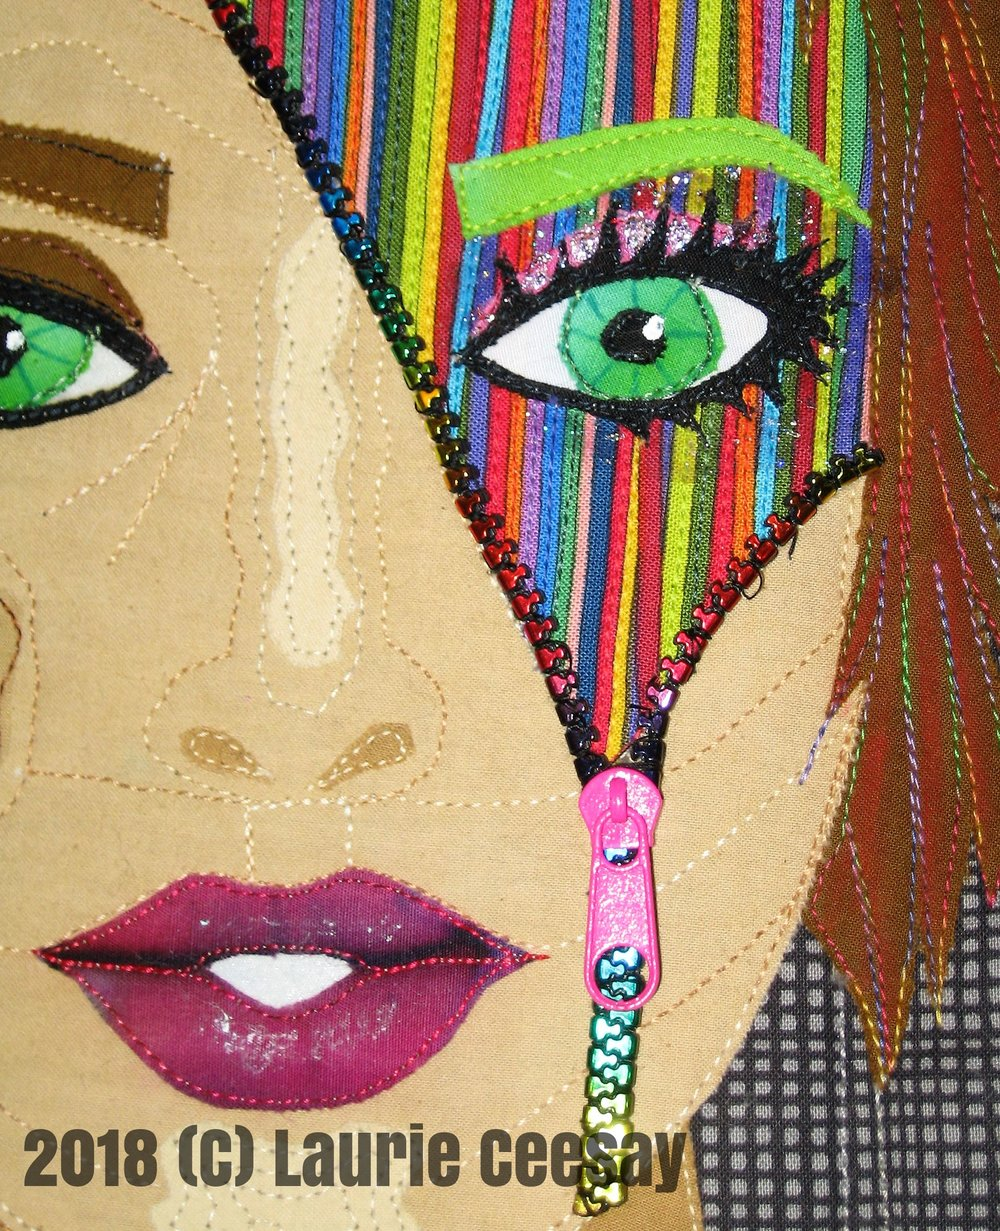 This is a close up of the face. The pink batik used in the mouth had a lot of muted stripes and I fussy cut the mouth applique to get shadow dimension and it turned out great without lots of work. The hair seemed to blend too much into the boring background so I used some lighter colored Derwent Inktense fabric pencils to add more contrast. I added some nail polish for eye glitter to the striped side of the face.